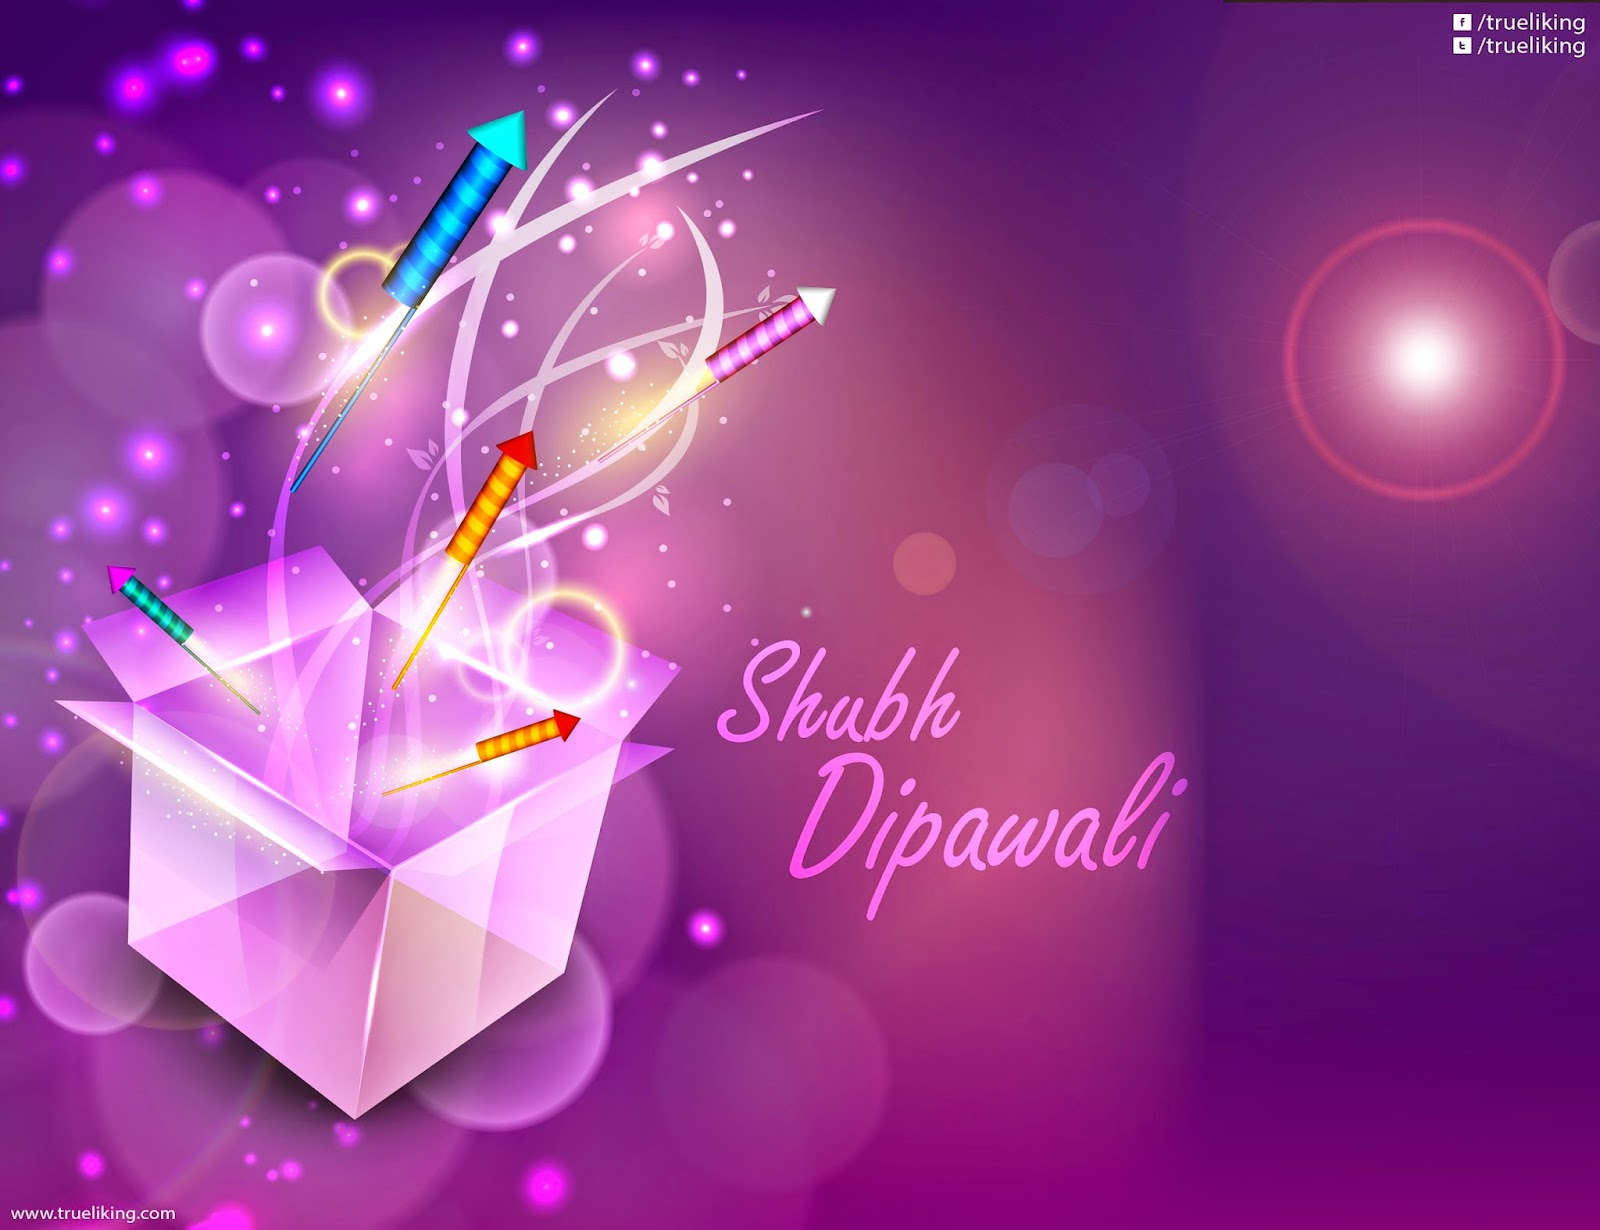 1920x1080 and 1920x1200 resolution with Diwali desktop pictures,photos,pics and images